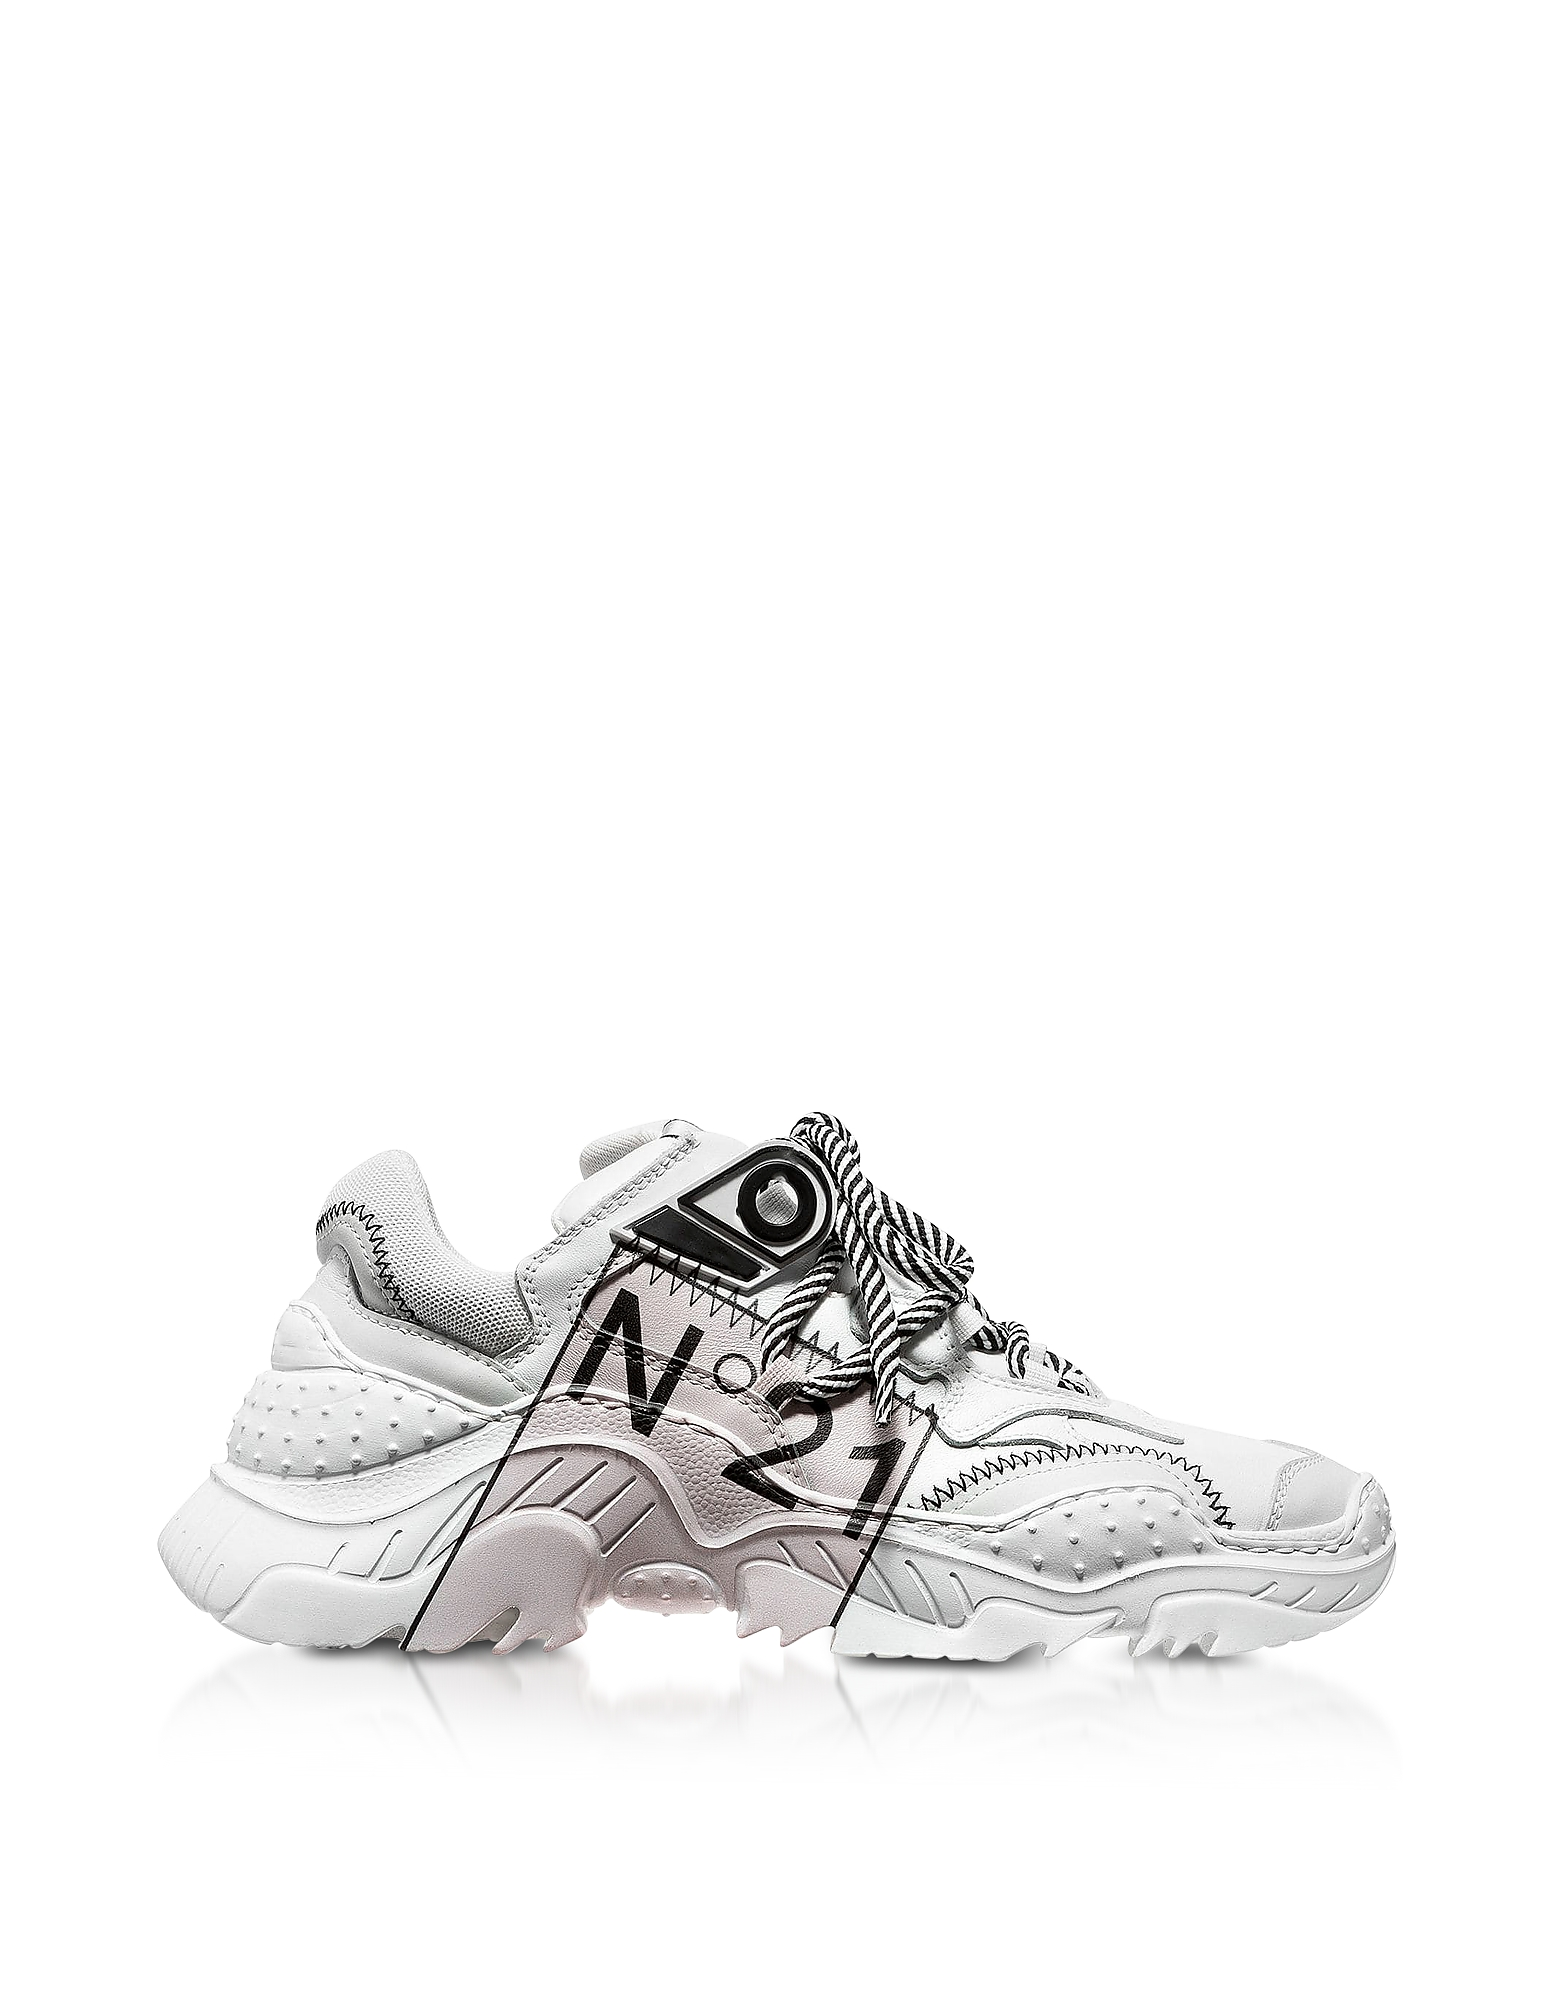 N°21 Sneakers BILLY LIMITED EDITION WHITE WOMEN'S SNEAKERS